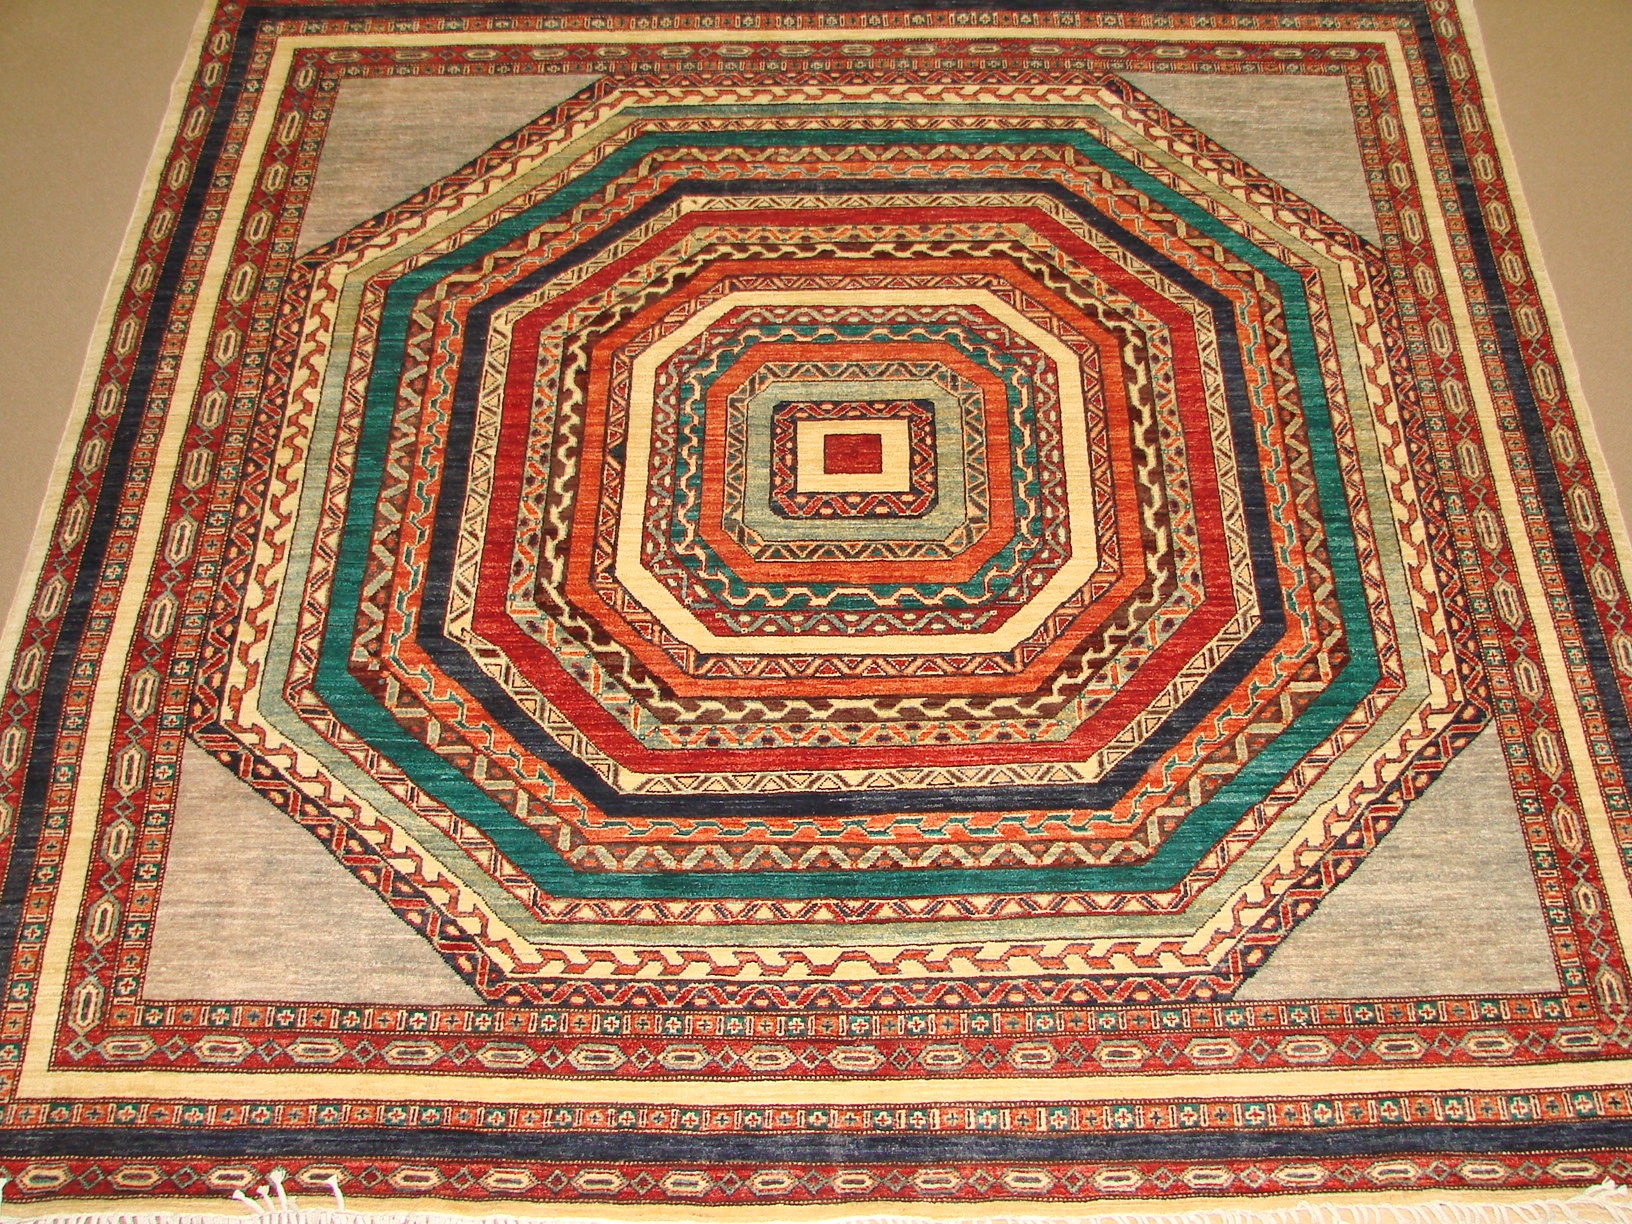 8 ft. Round & Square Traditional Hand Knotted Wool Area Rug - MR16133